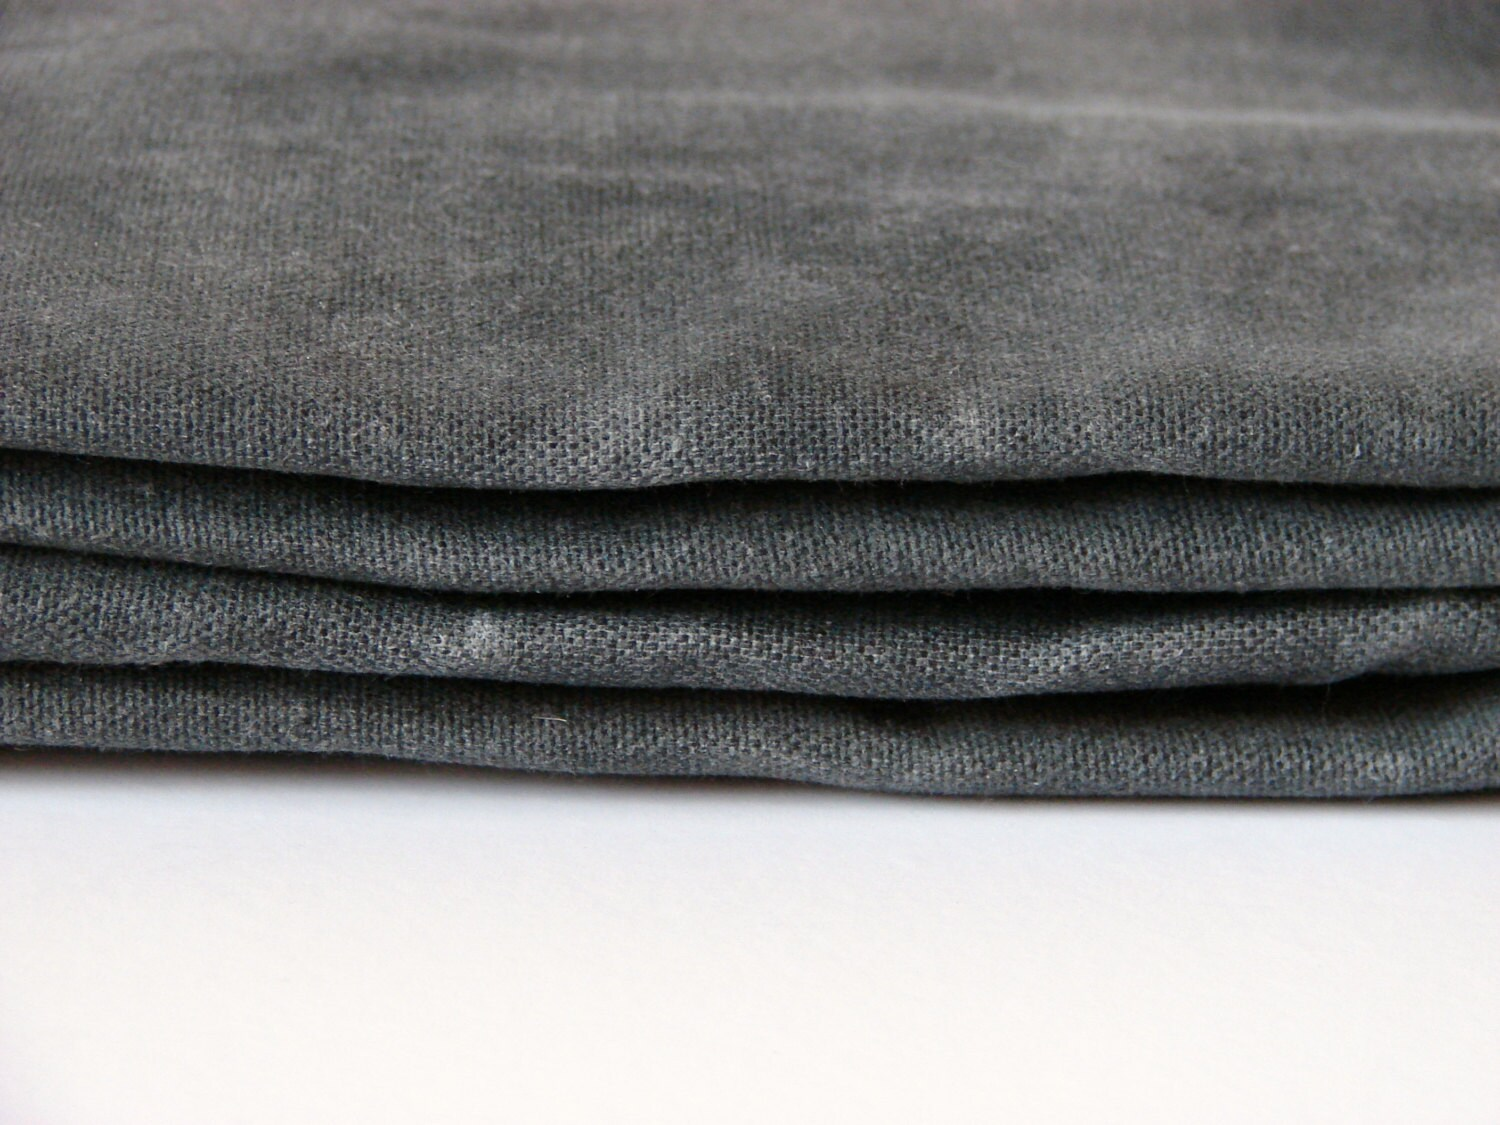 Hand Waxed Cotton Canvas Fabric Graphite Grey 10oz Etsy